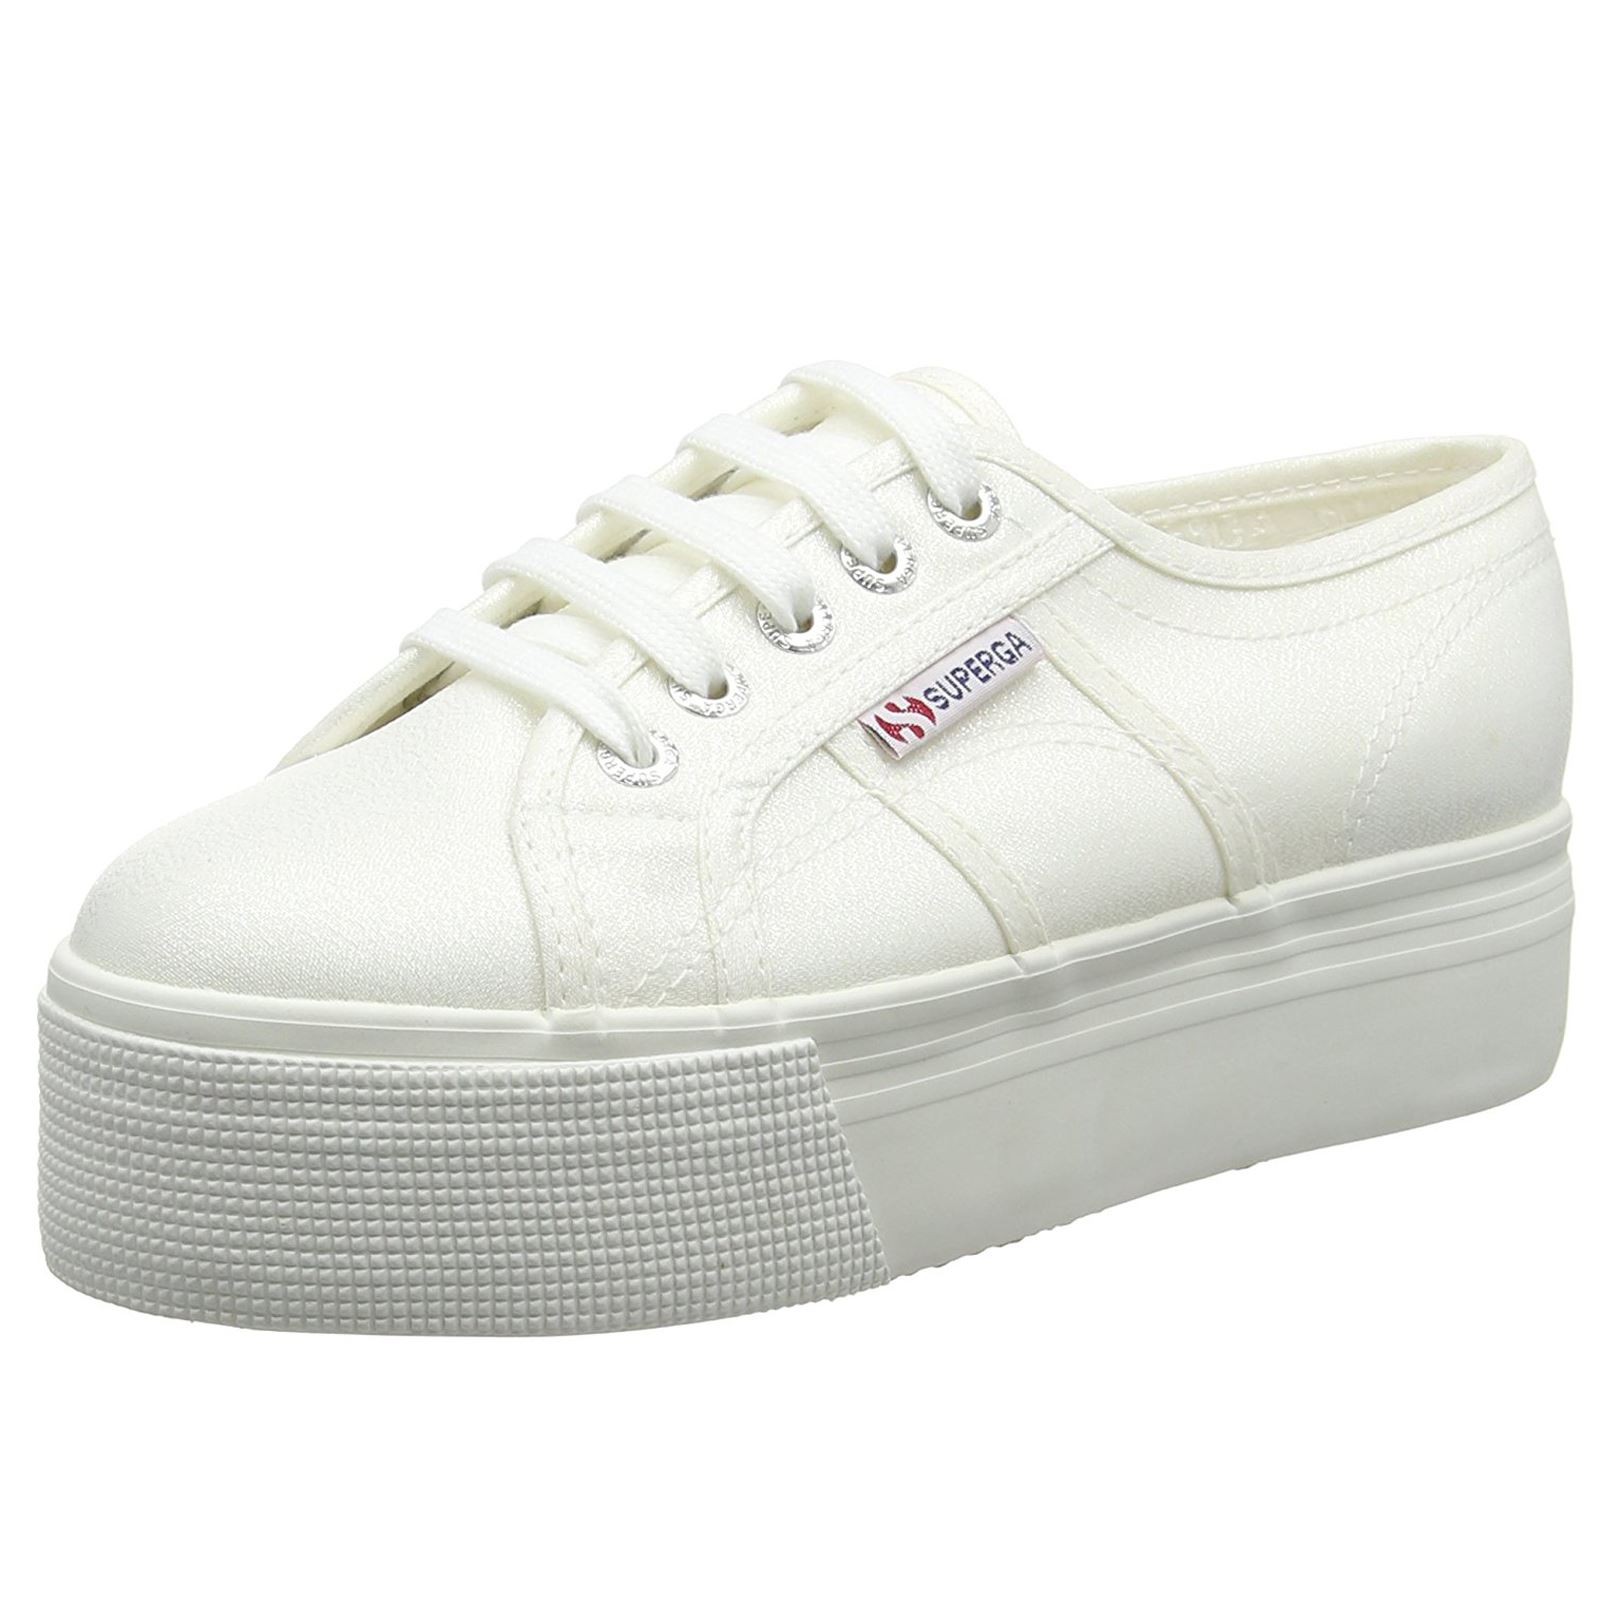 Superga 2790 Lamew White Womens Flatform Trainers